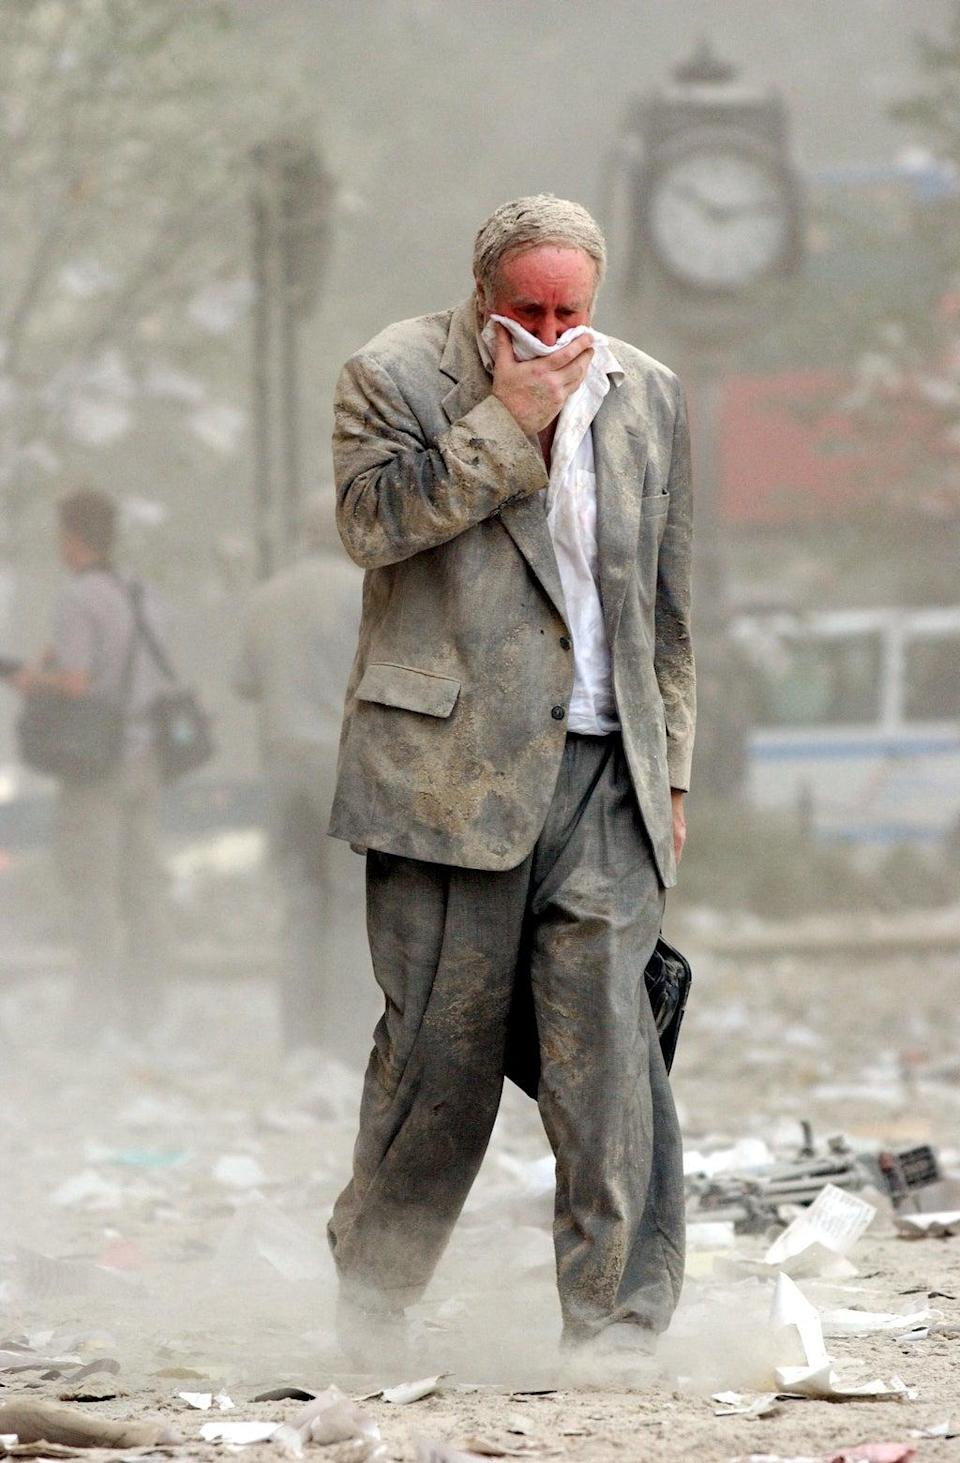 Survivor Edward Fine, who was on the 79th floor of the North Tower when it was struck, covers his mouth as he walks through the debris (AFP/Getty)